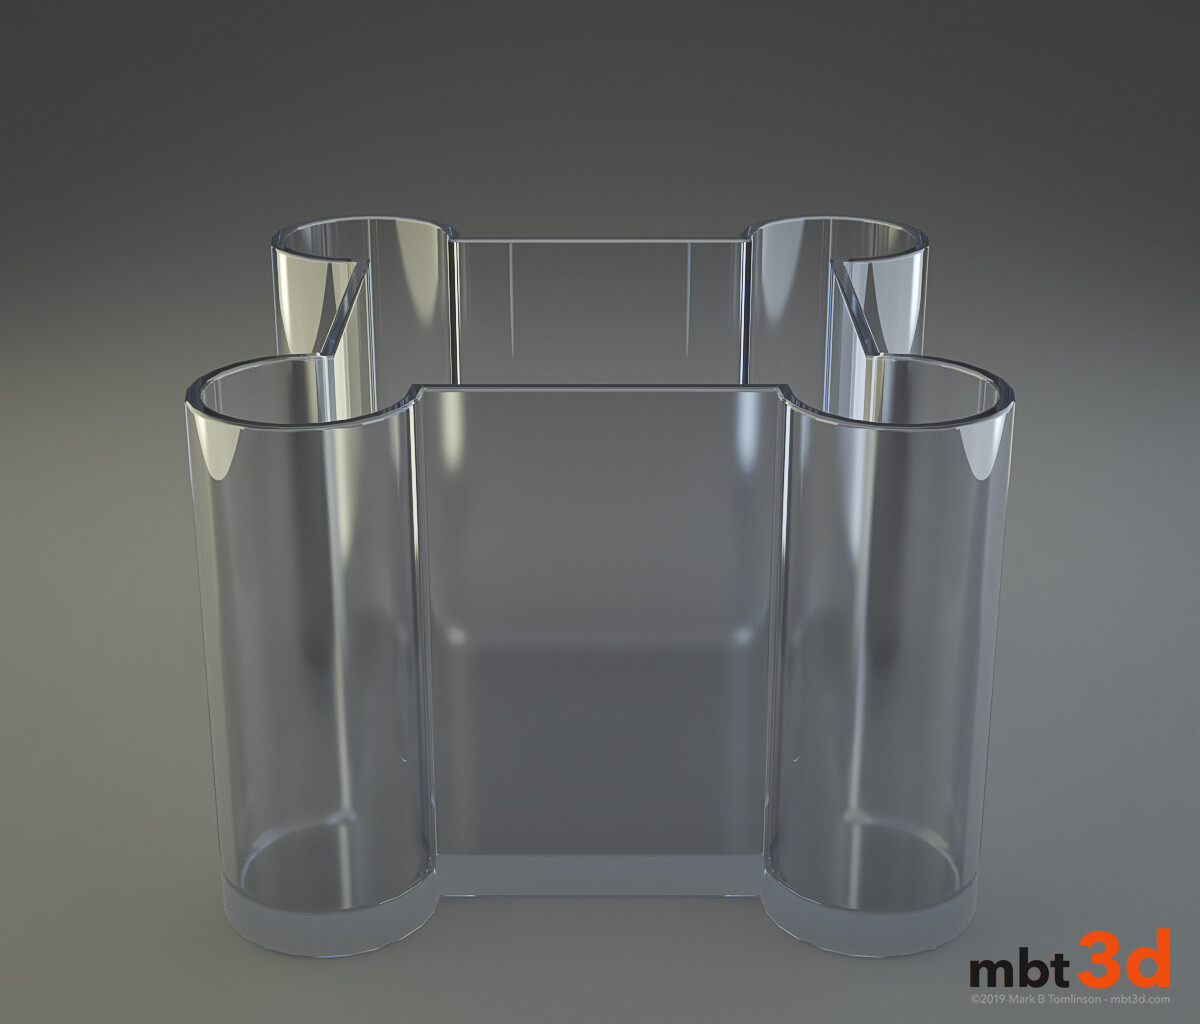 Vase: 1 Simple Glass